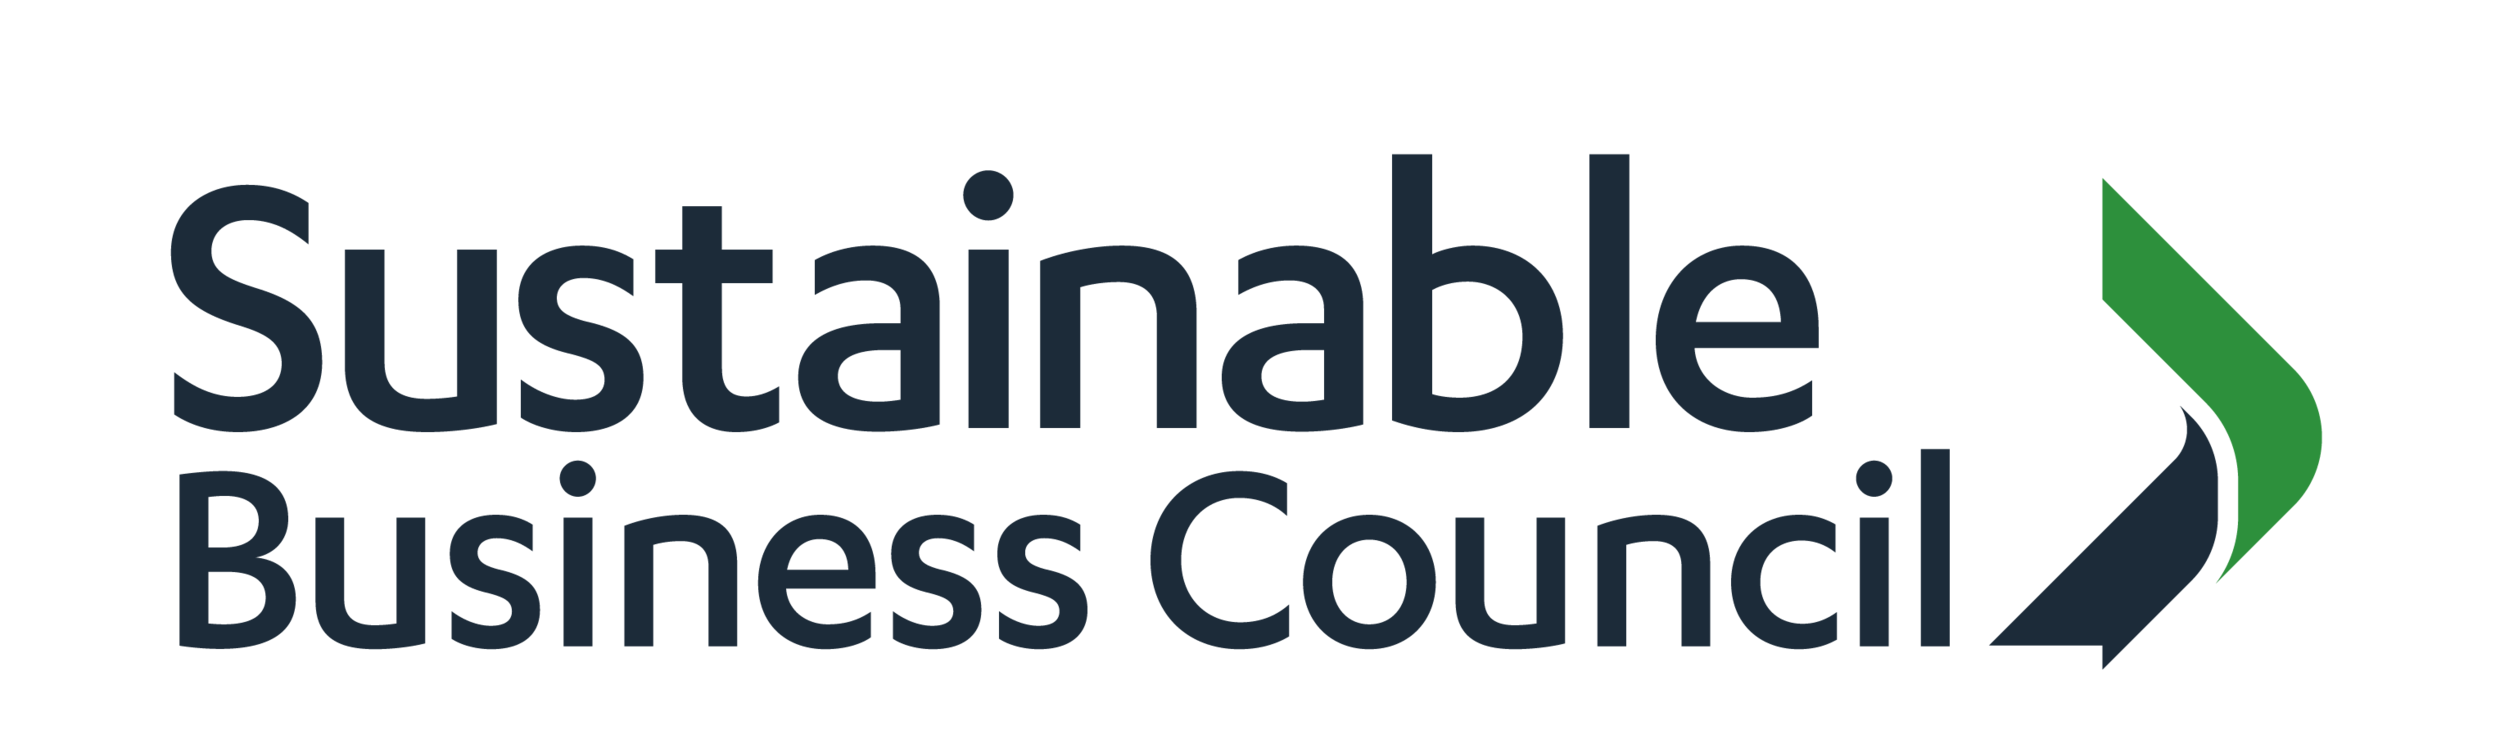 Sustainable Business Council RGB.png